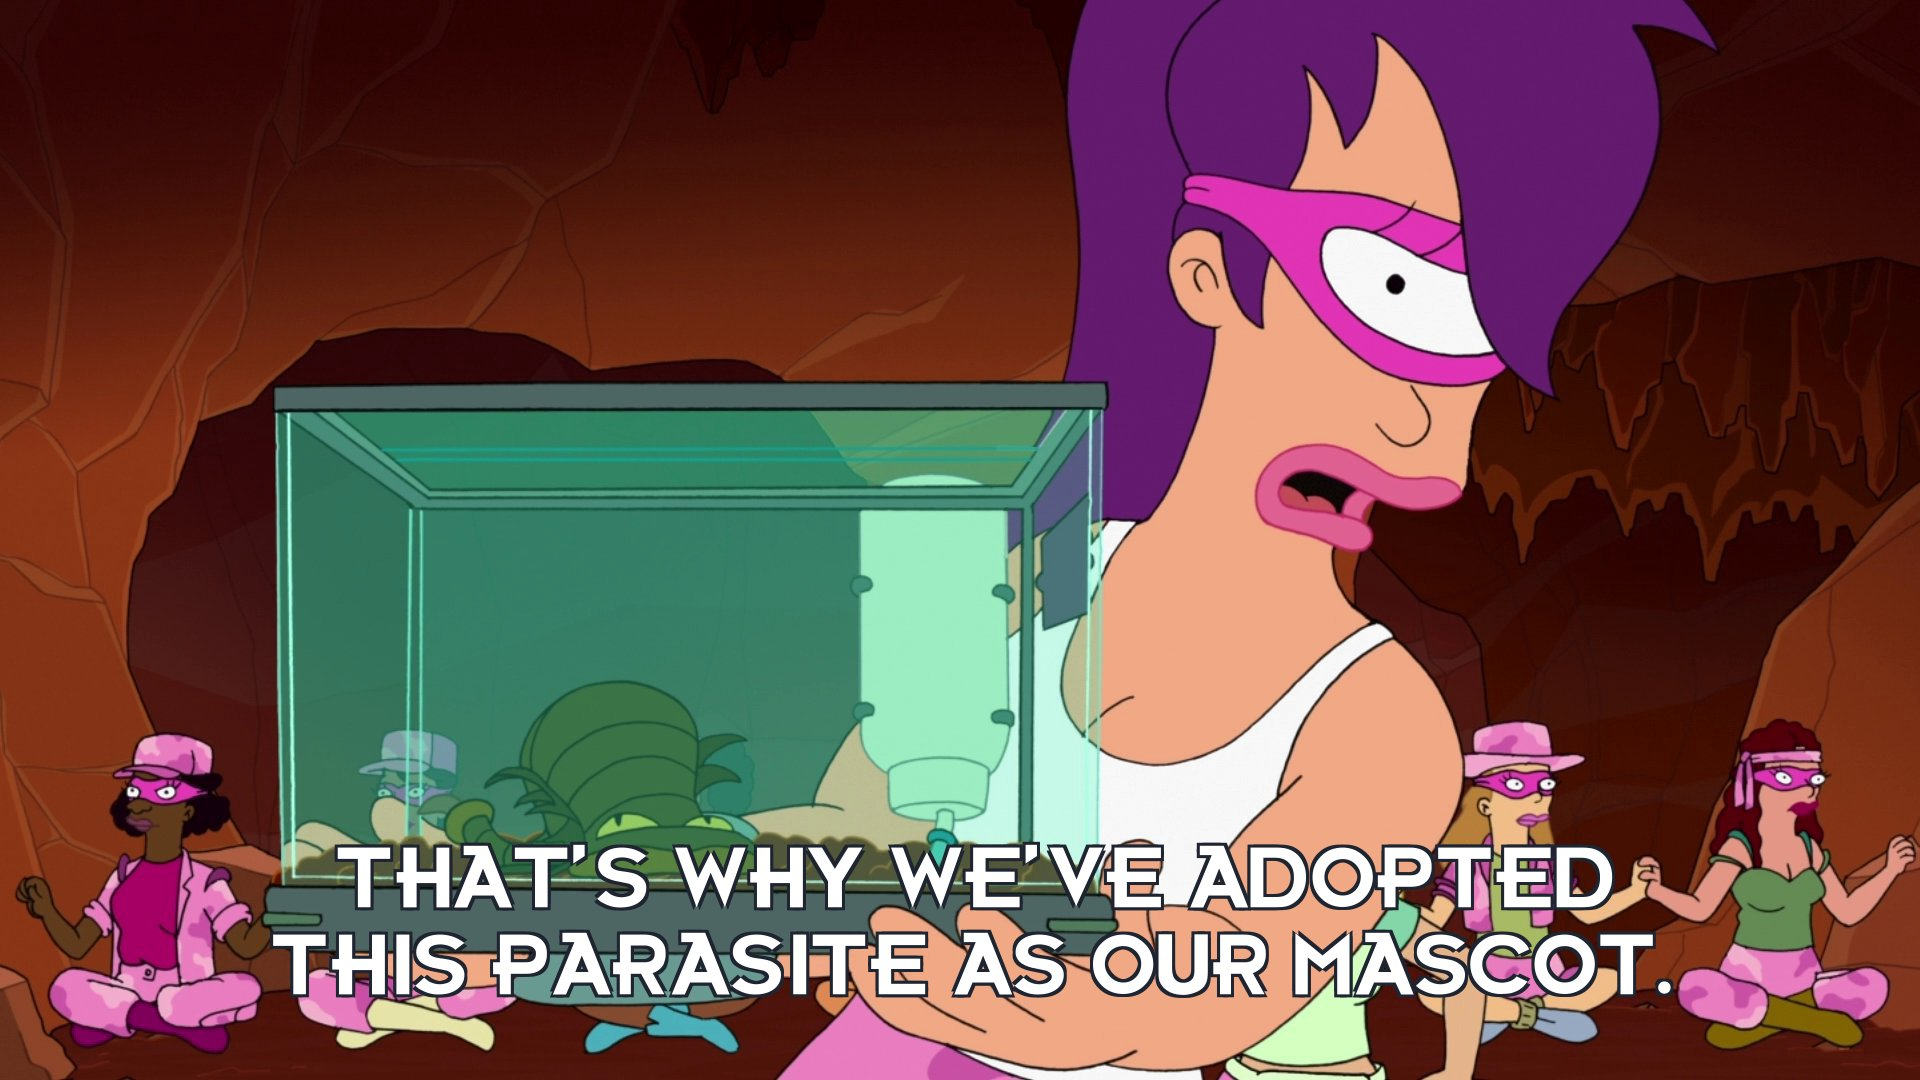 Turanga Leela: That's why we've adopted this parasite as our mascot.